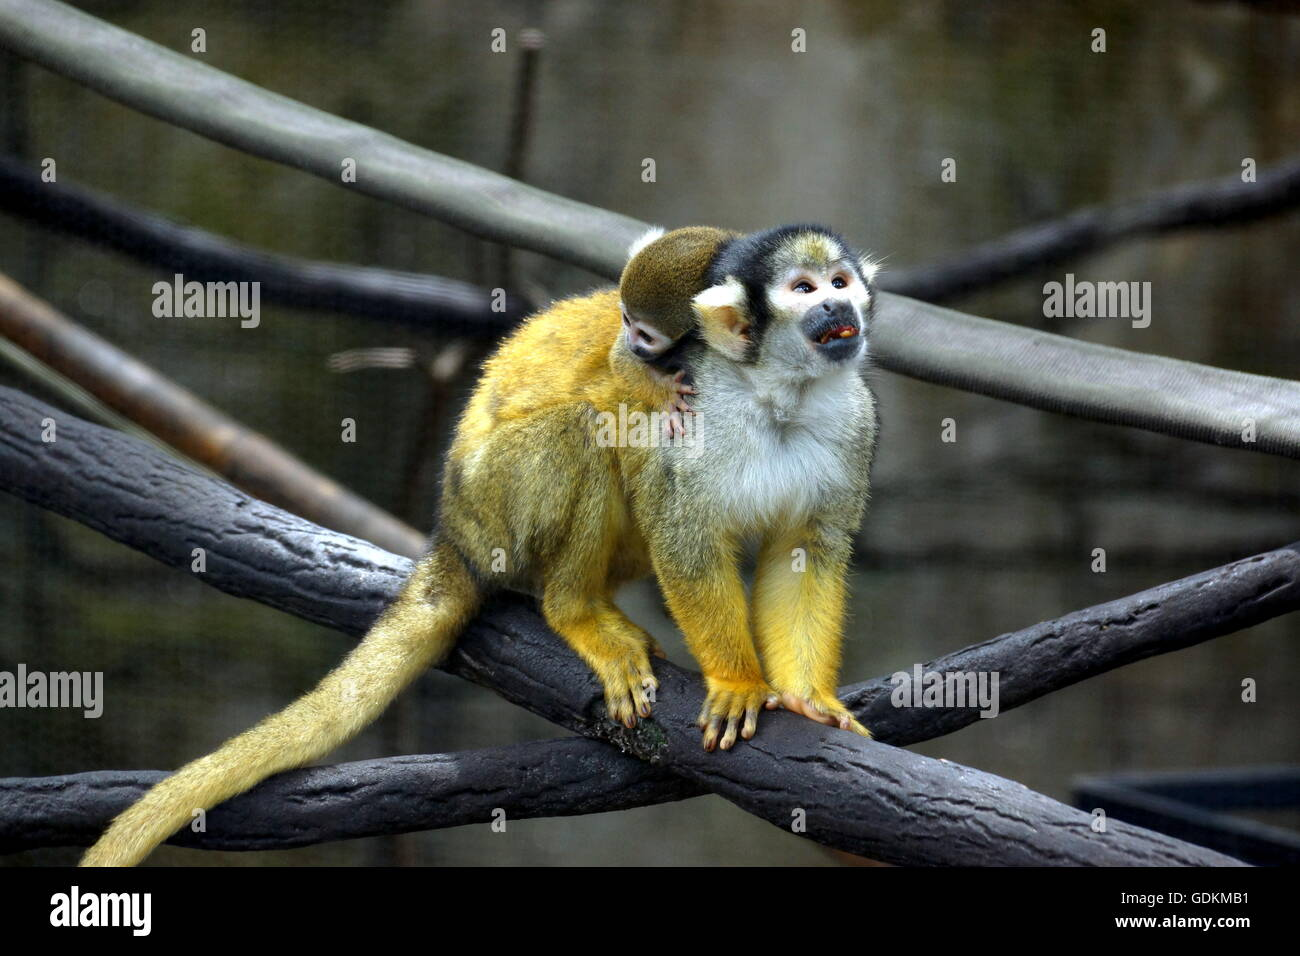 Baby squirrel monkey riding on mama's back at the Lowry Park Zoo in Tampa, Florida, USA - Stock Image